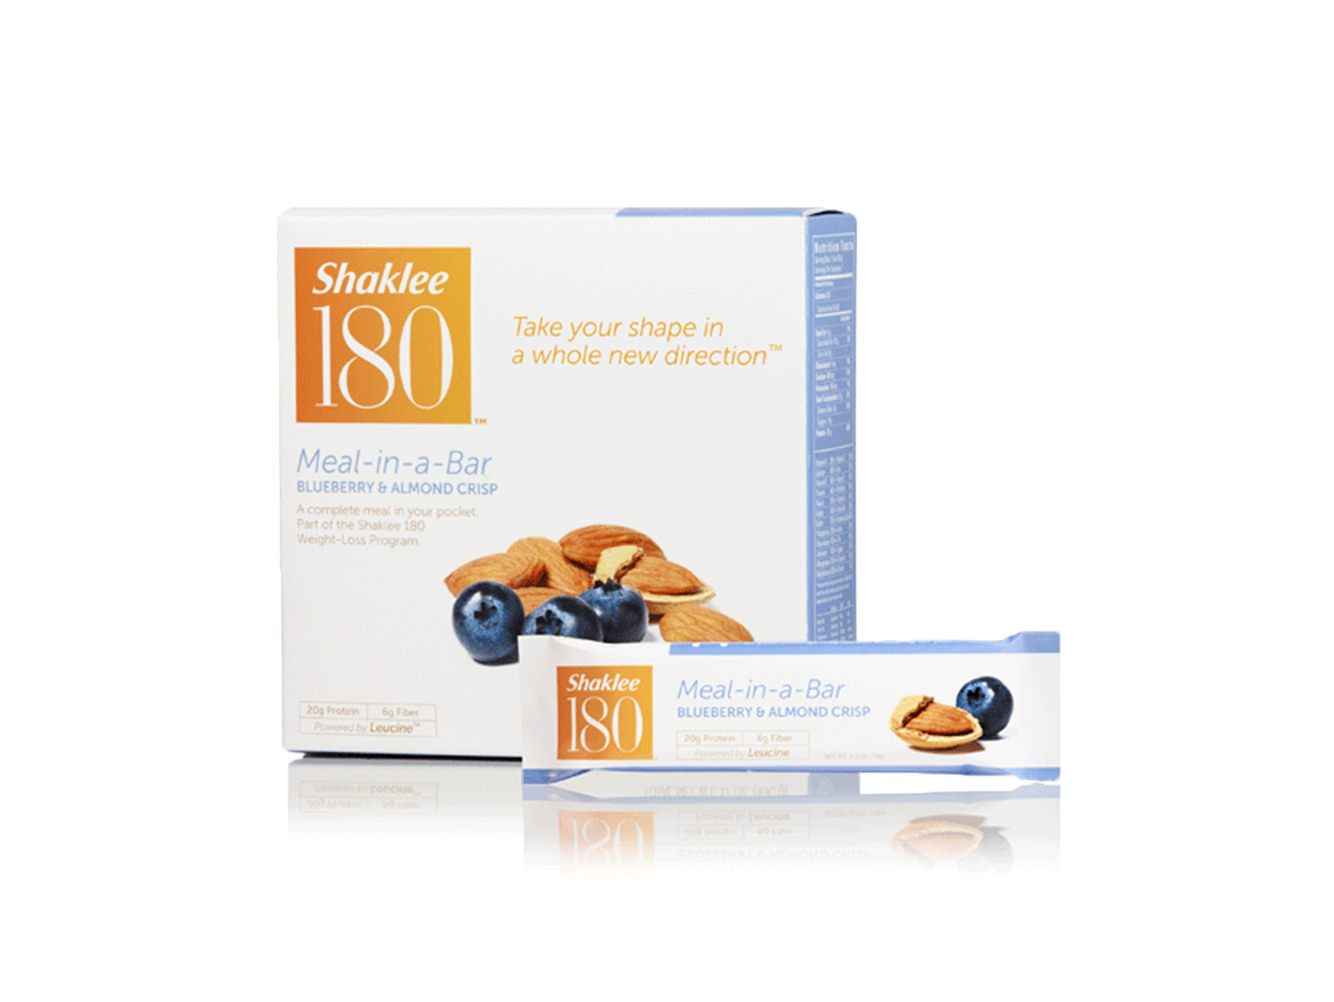 Shaklee180_package_02_MAX